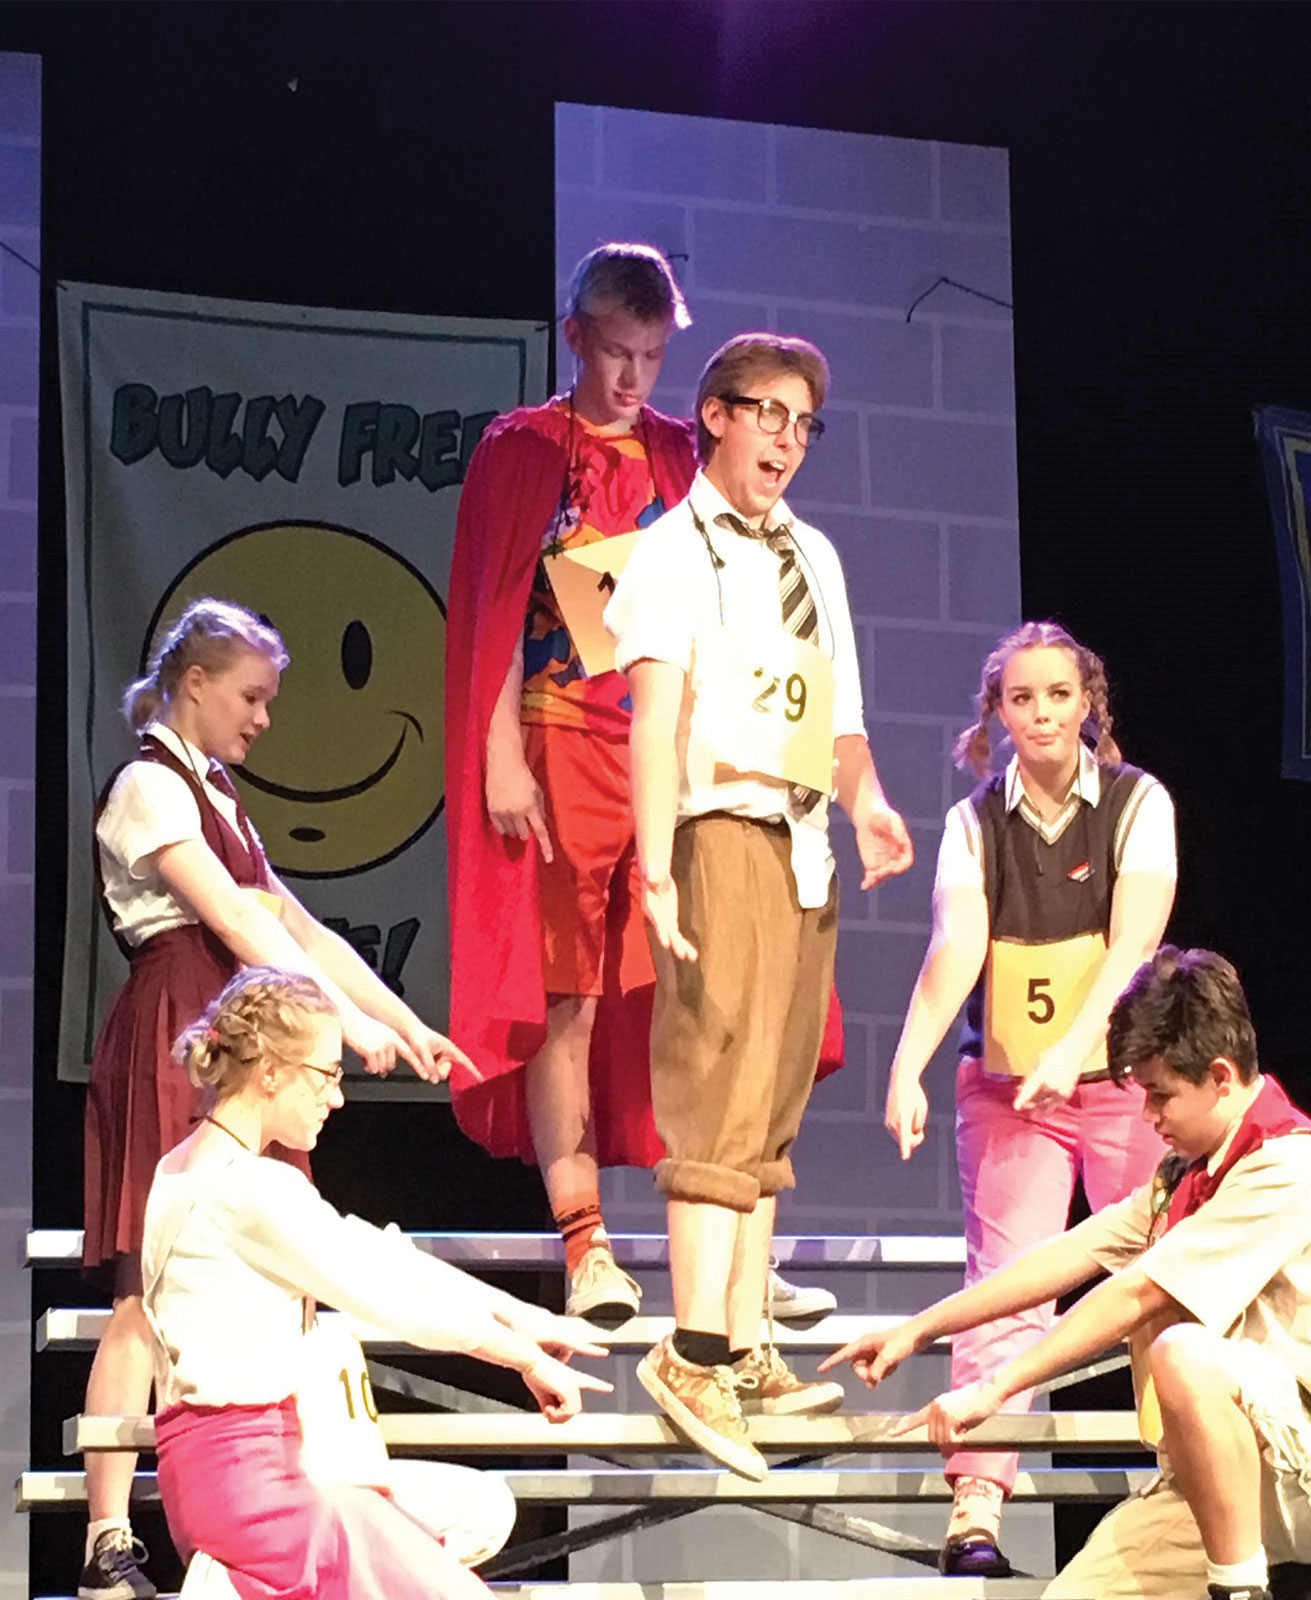 Senior Bowen Gray as William Barfee (center), freshmen Maddie Ruttenberg as Olive Ostrovesky and Cate Kauber as Marcy Park, sophomores Henry Kacik as Leaf Coneybear, and Emma Belew-LaDue as Logainne Schwartzandgrubenierre, and freshman AJ Knorr as Chip Tolentino.